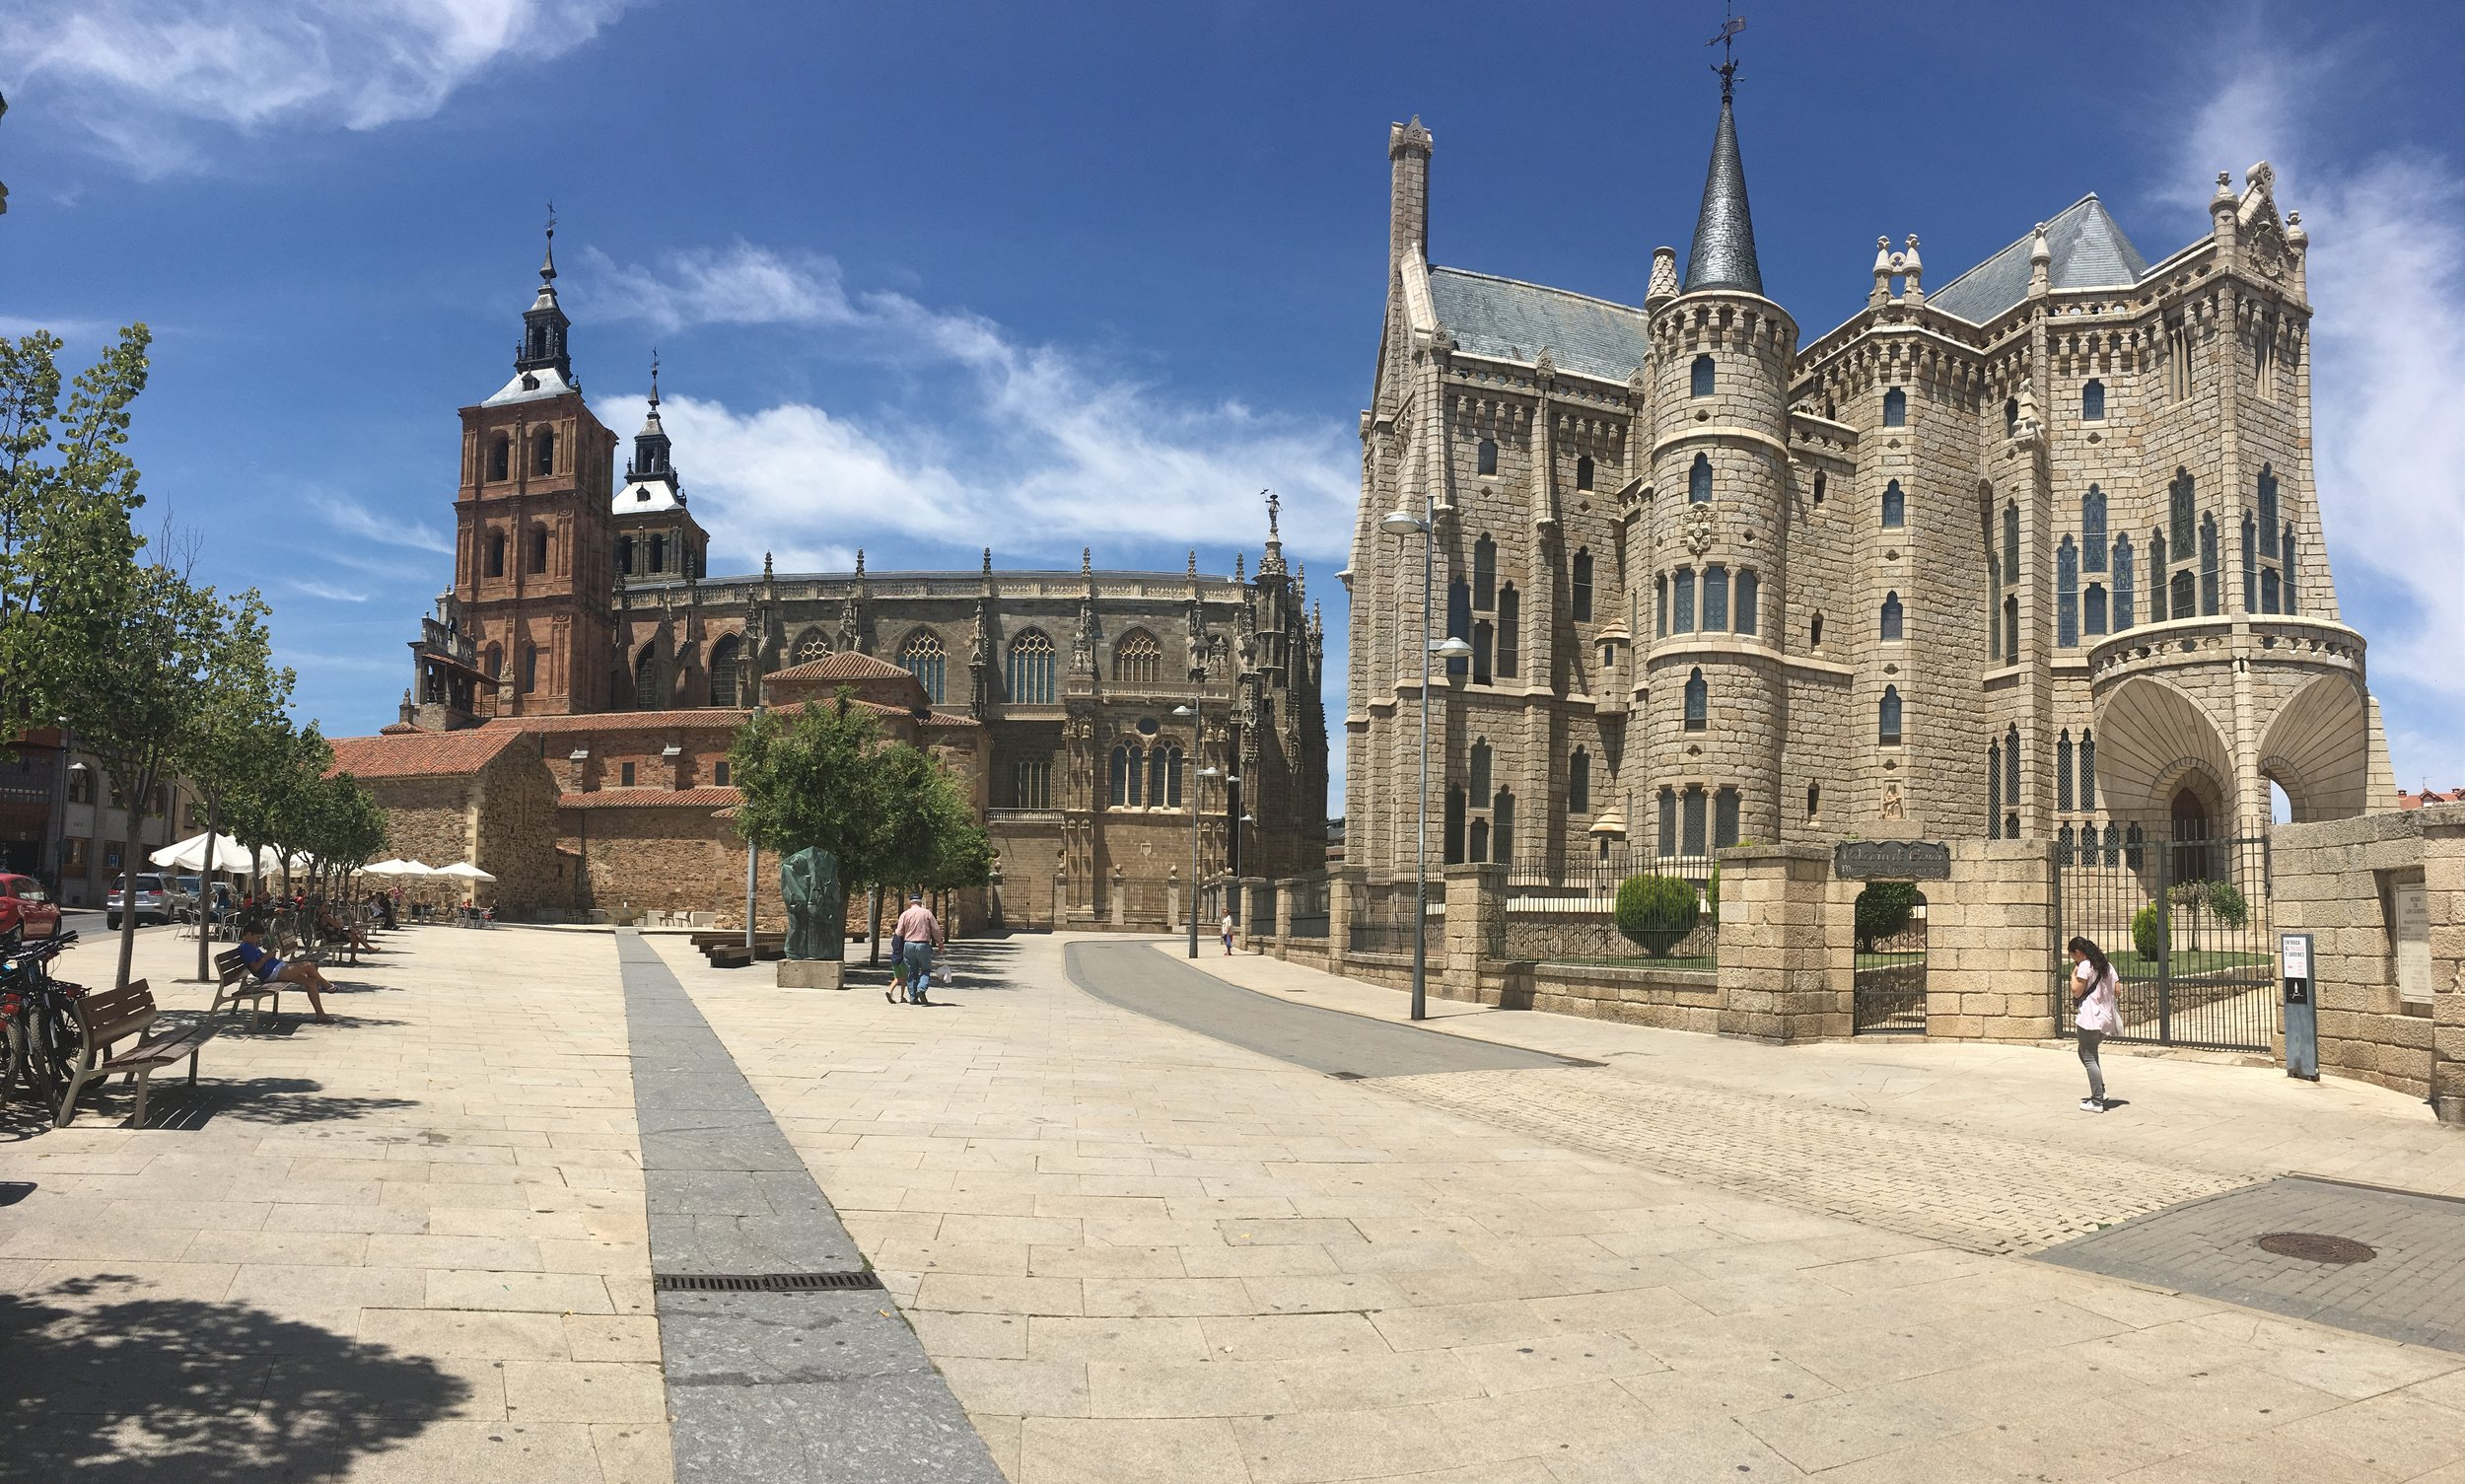 The cathedral (left) and the palace (right)